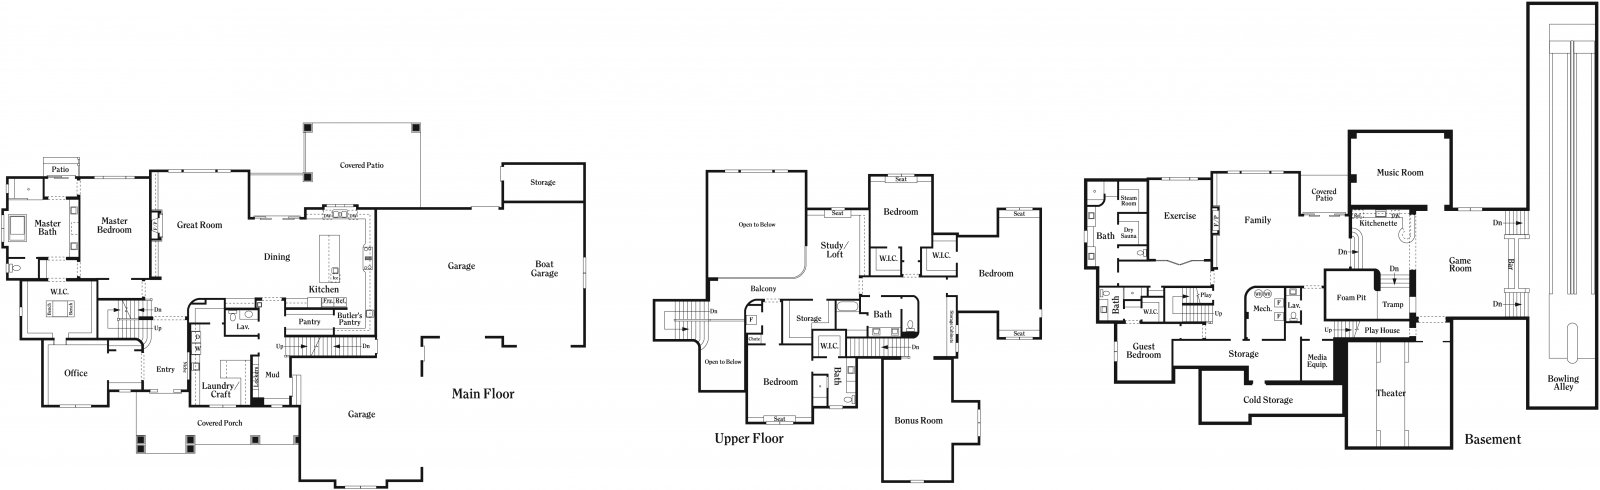 Utah parade of homes floor plans gurus floor for House plans in utah